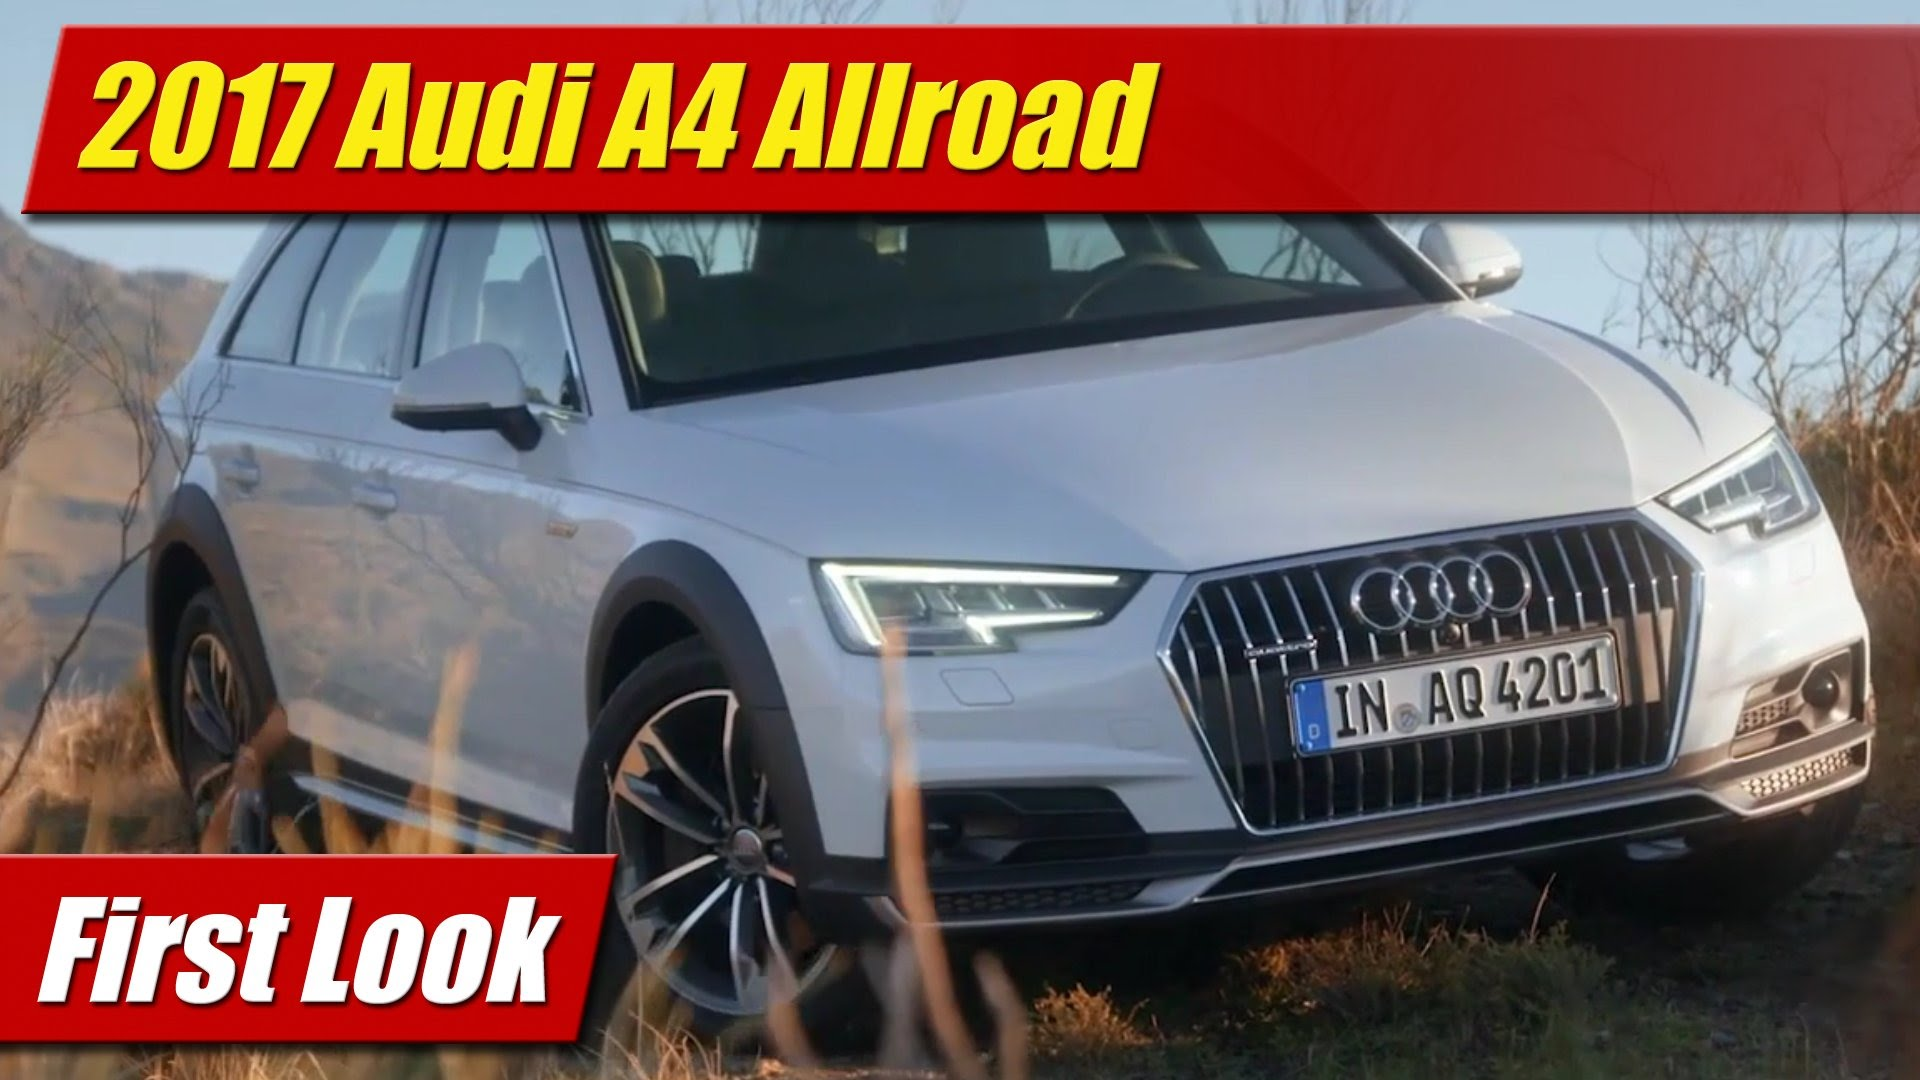 First Look 2017 Audi A4 Allroad